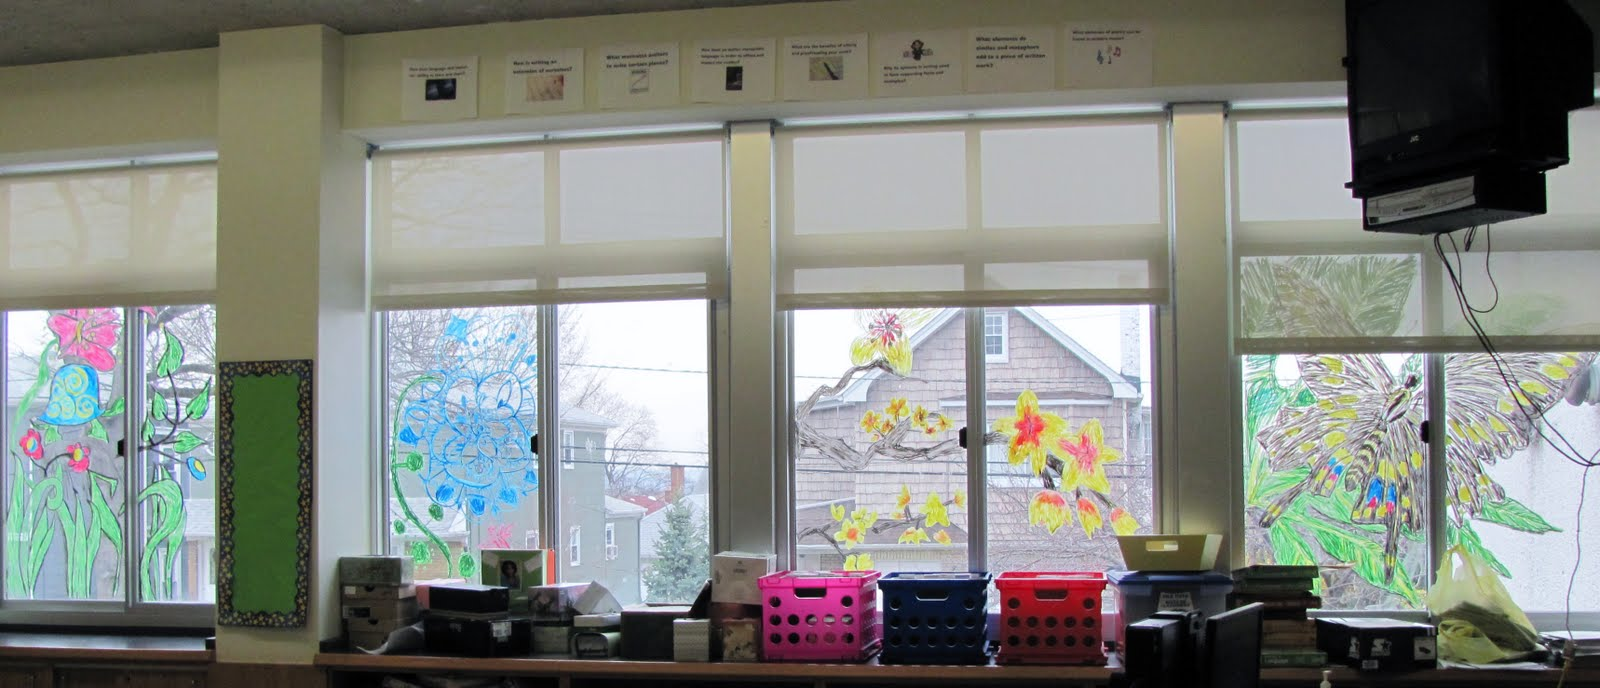 Classroom Window Design ~ How to decorate a classroom beautifully teaching tofu